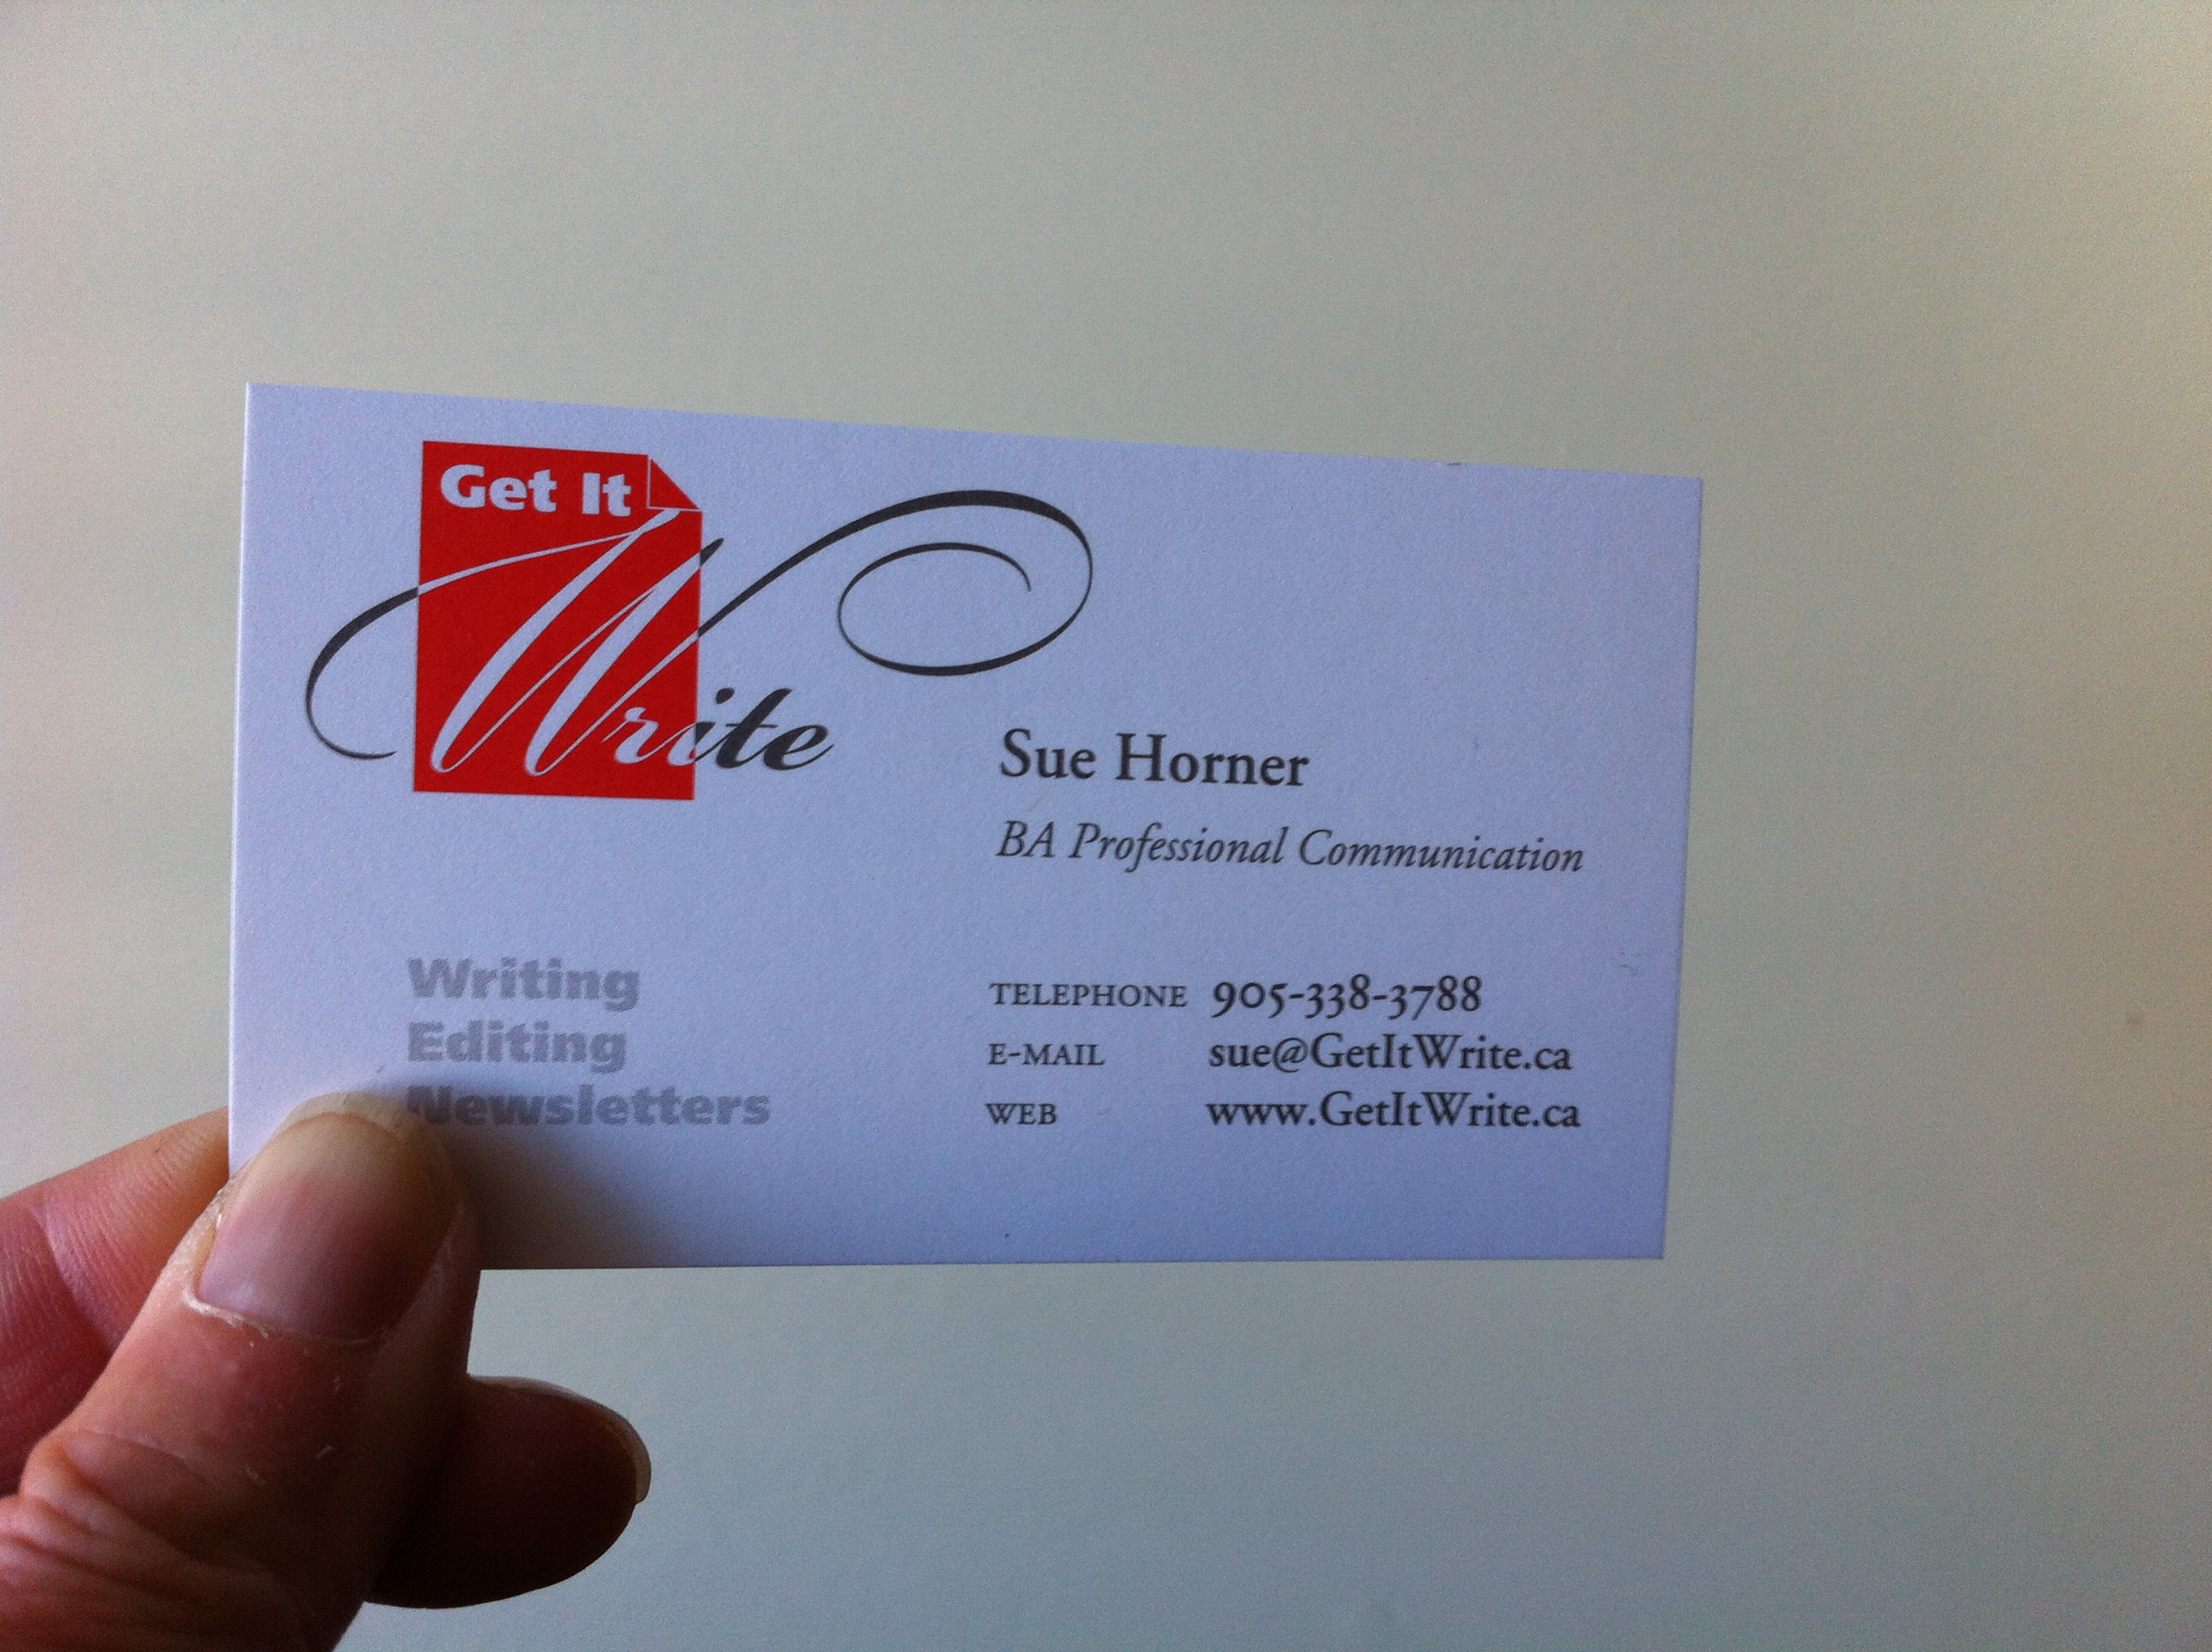 Sue's business card